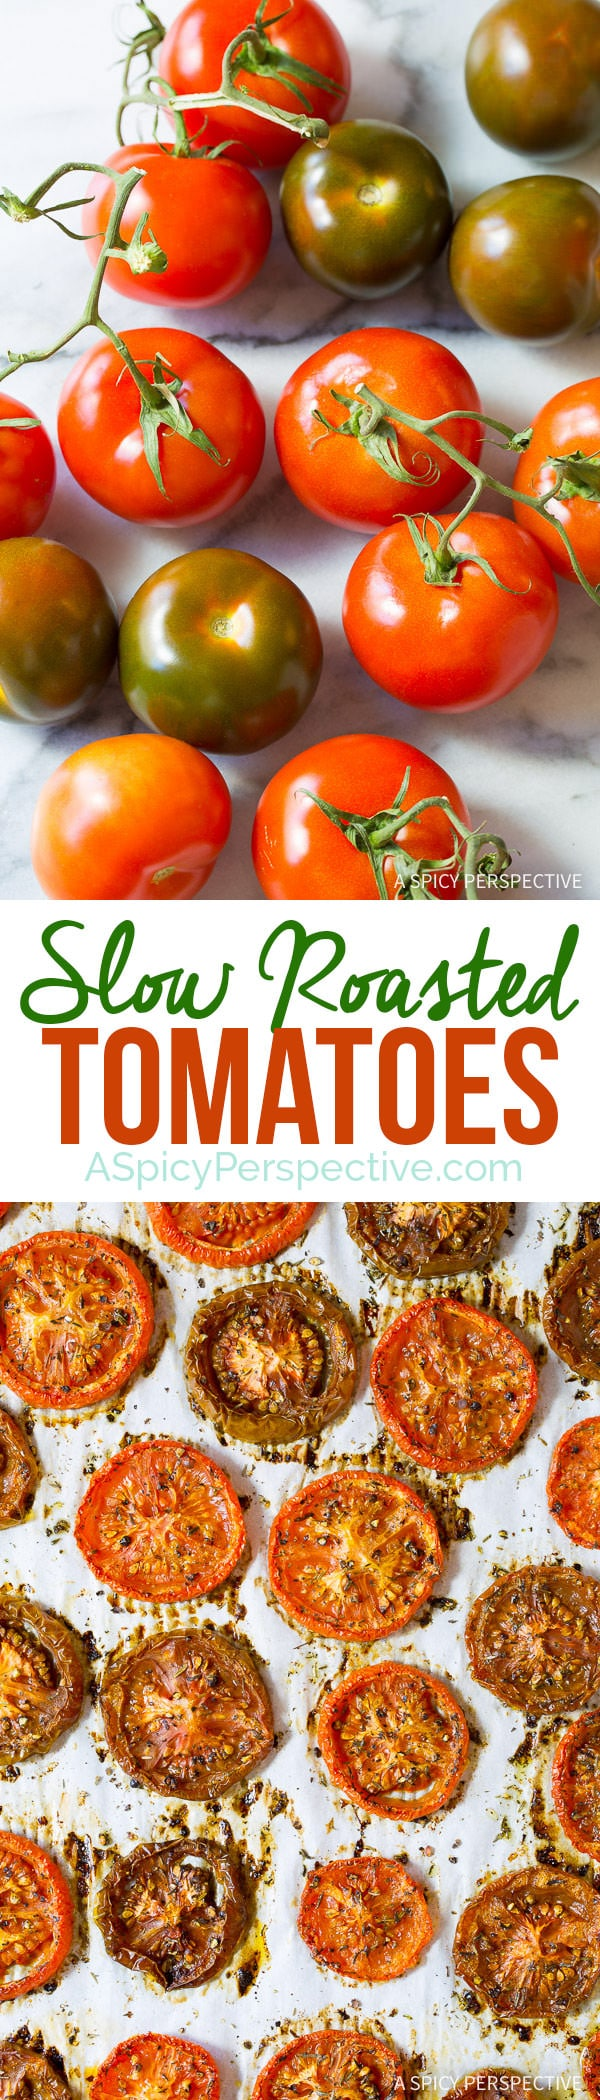 Easy Sweet and Savory Oven Roasted Tomatoes | ASpicyPerspective.com